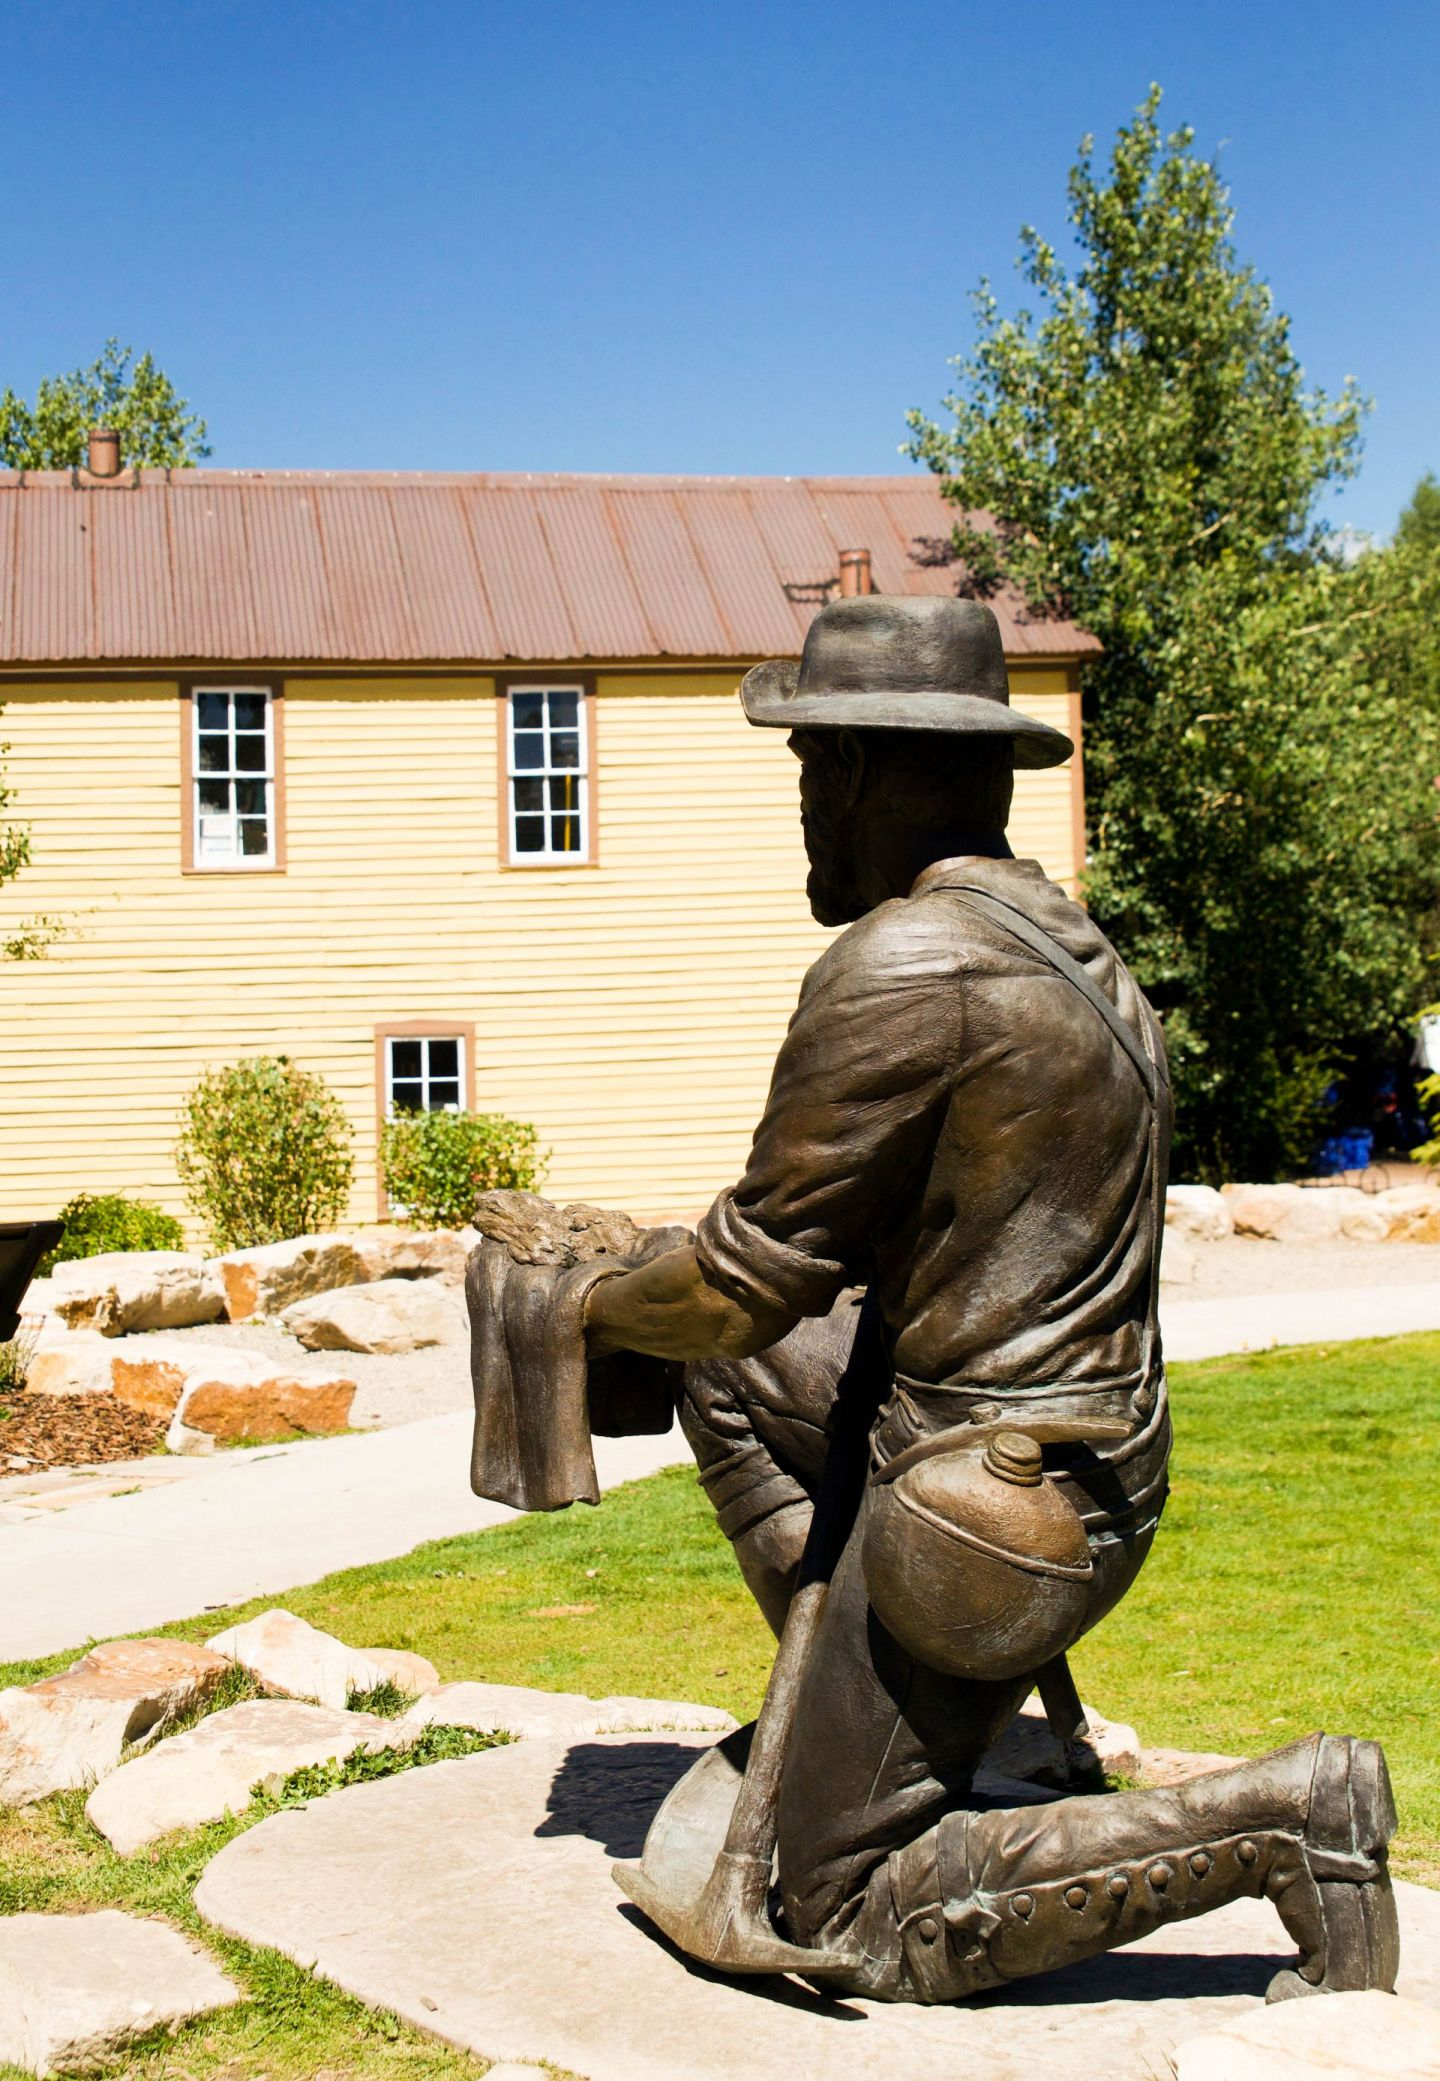 breckenridge, co - summer in colorado - miner statue breckenridge